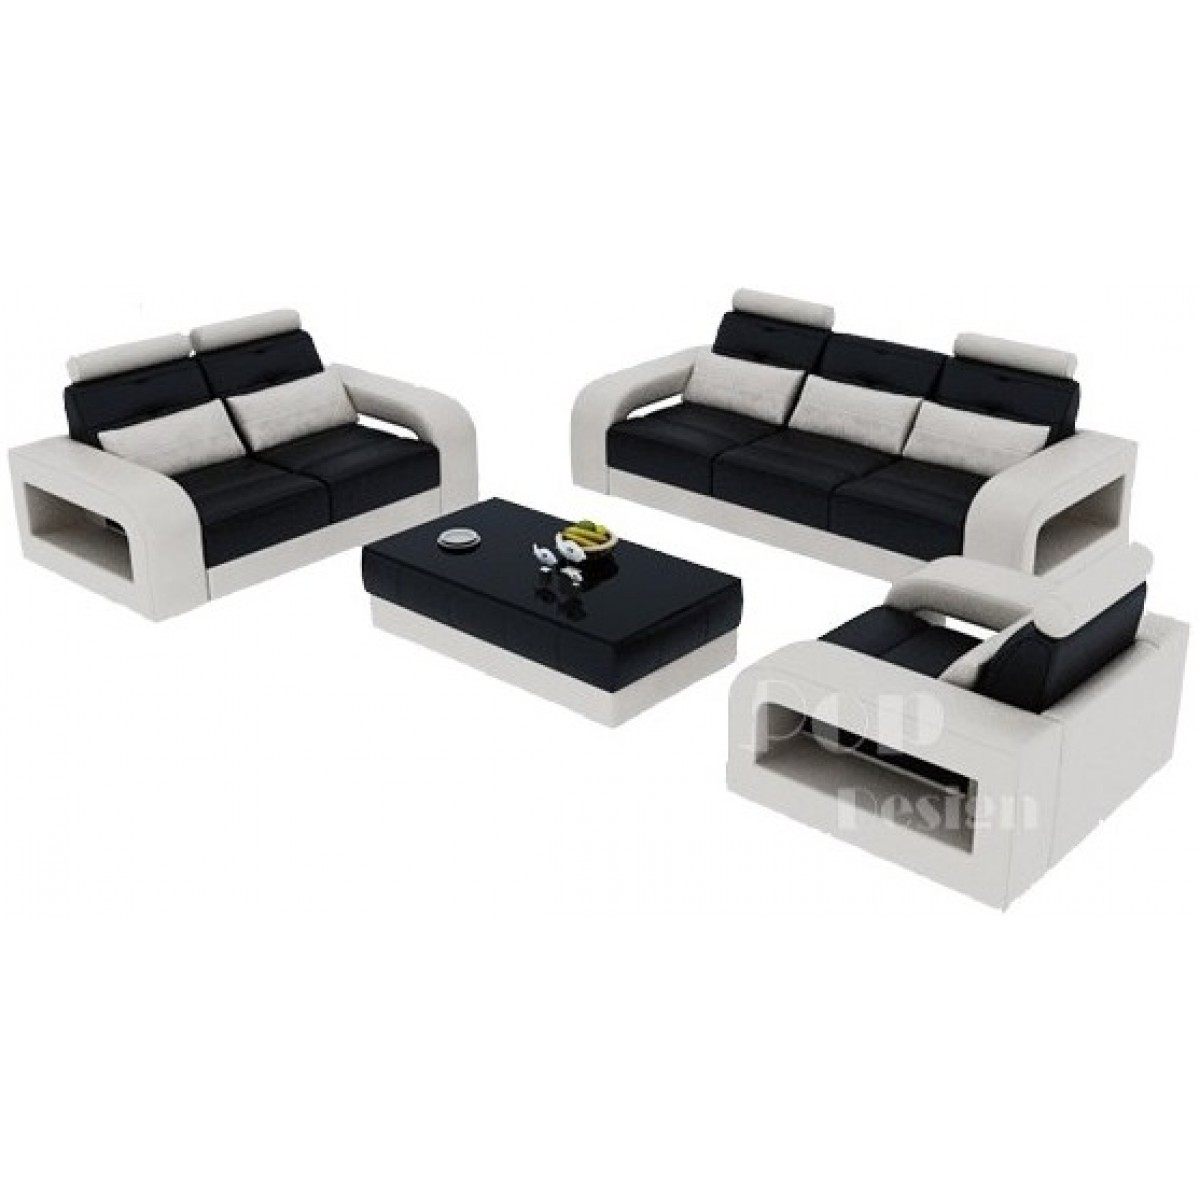 Salon set canap s personnalisable en cuir design salerno - Canape en cuir but ...